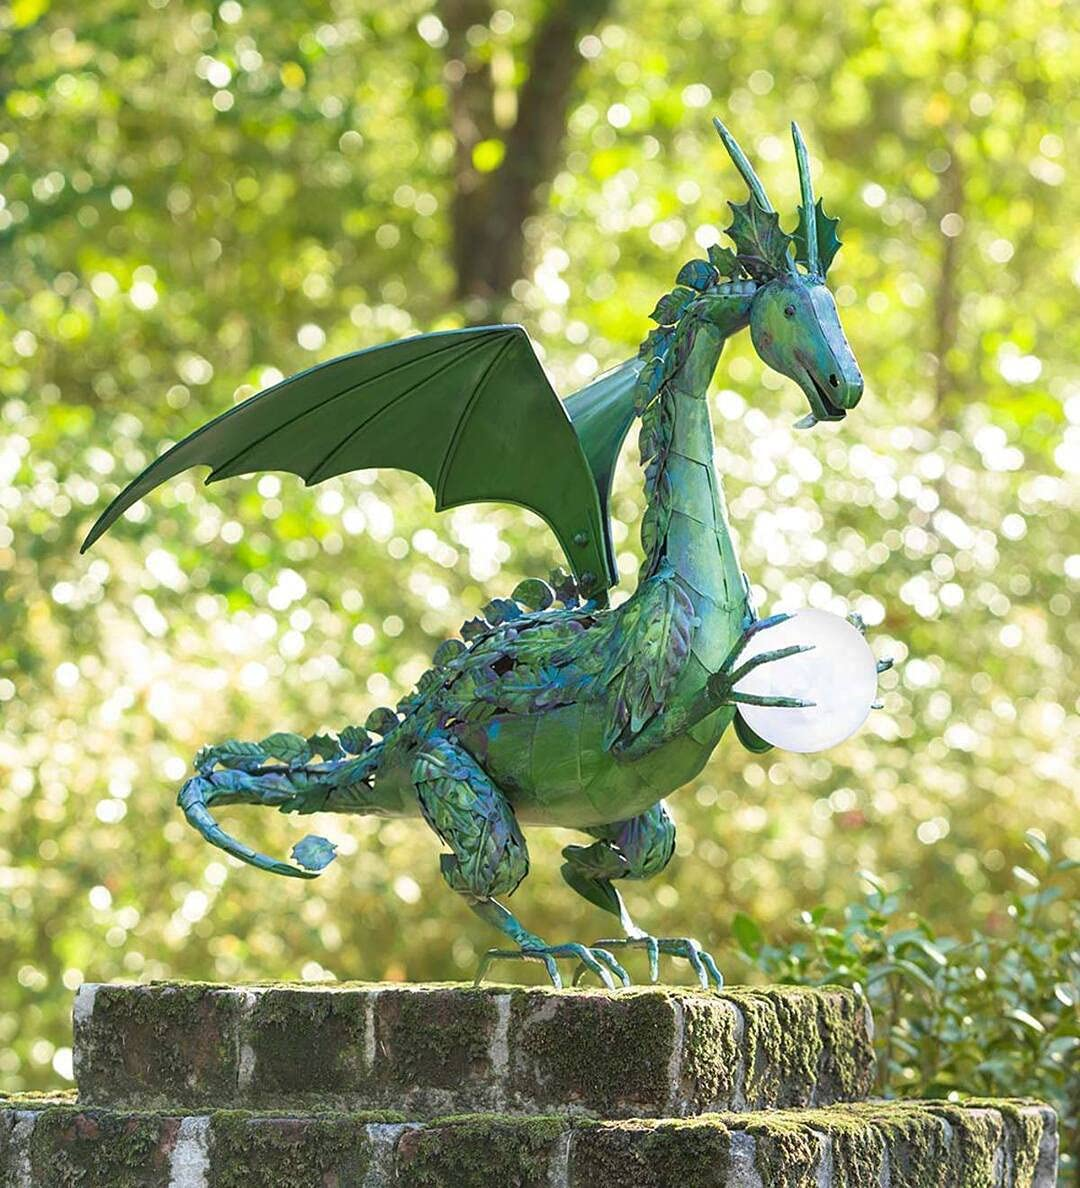 Green Dragon Statue with Solar Max 85% OFF trust Outdoor Garden Pearl Stat